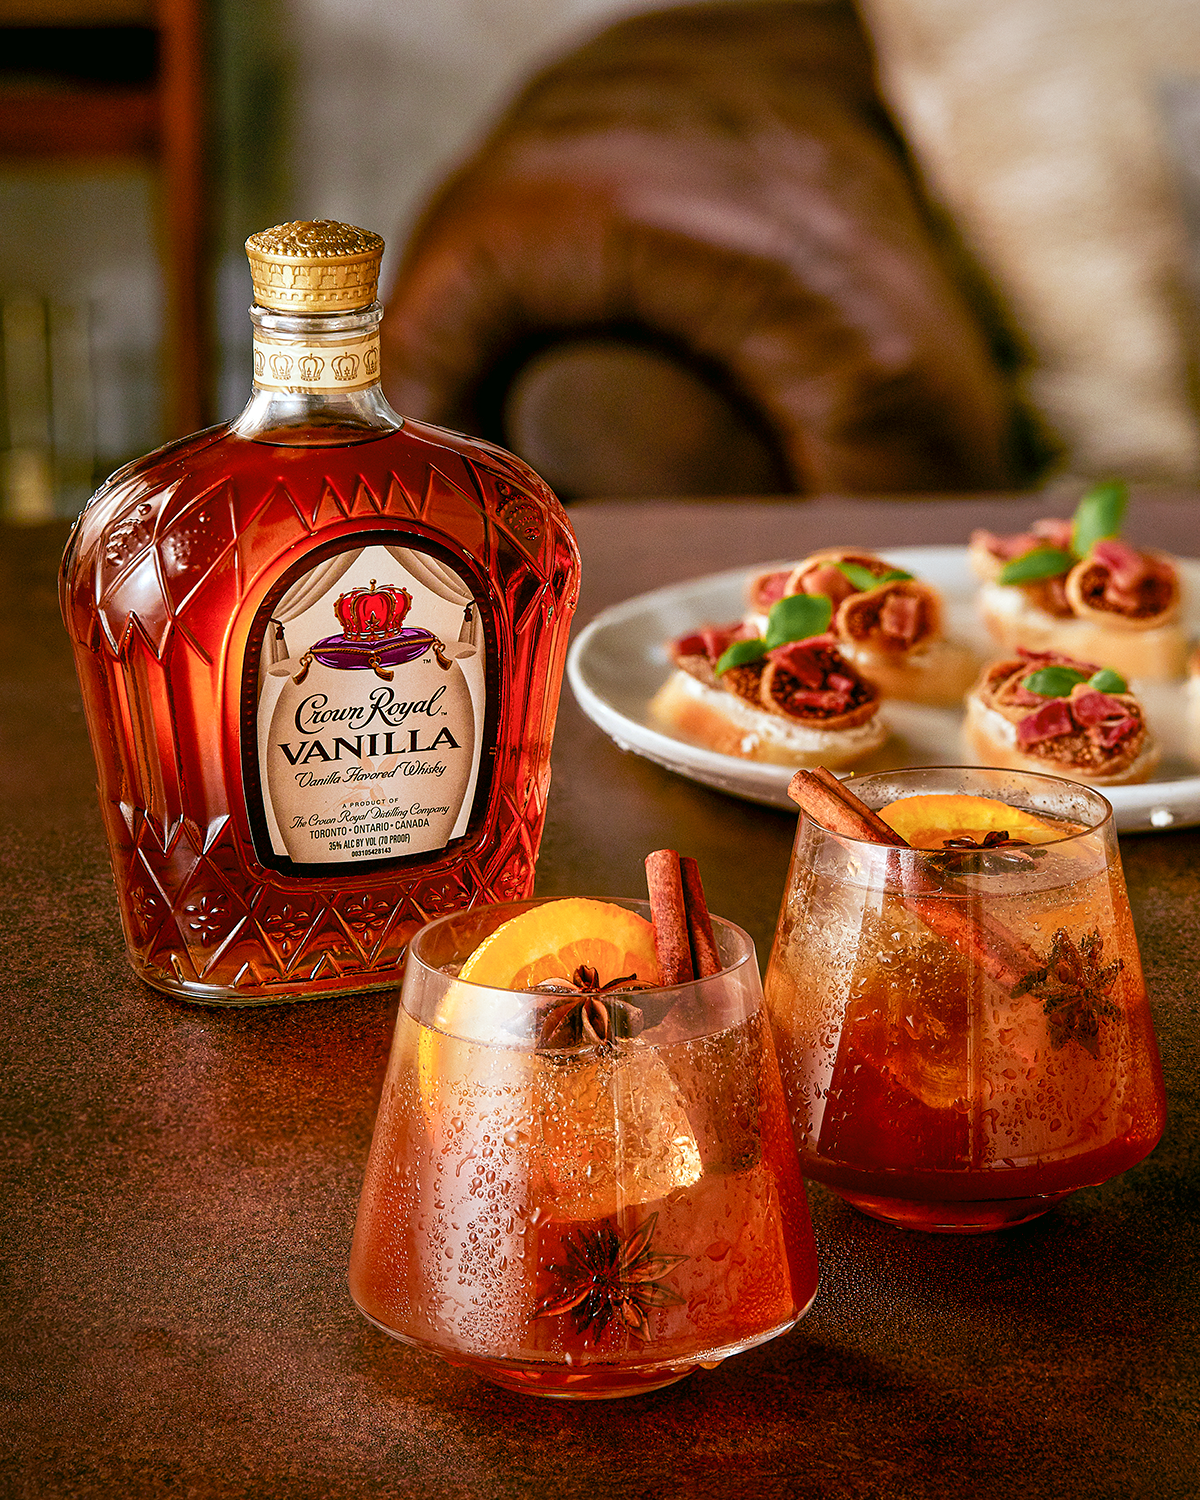 Crown Royal Vanilla Chai Old Fashioned Whisky Cocktail